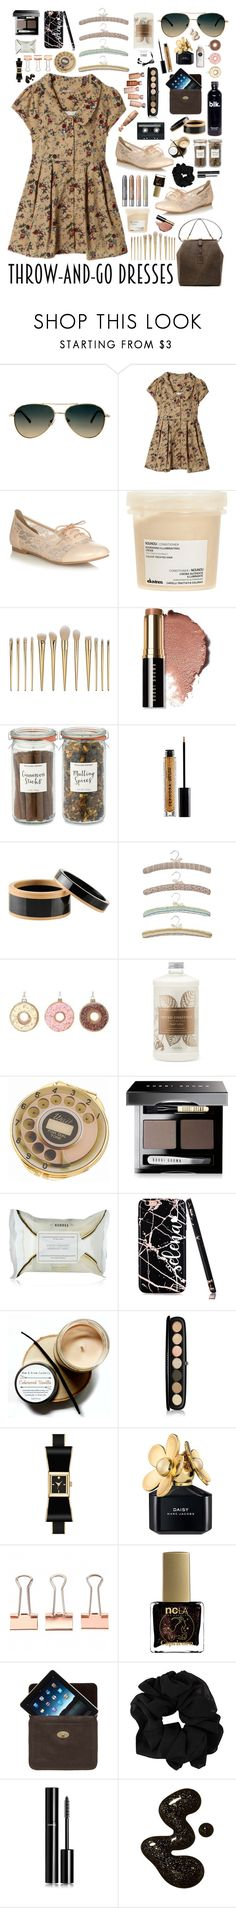 """""""Throw On Dress - Summertime Sadness"""" by milky-siamese ❤ liked on Polyvore featuring ASOS, Call it SPRING, Davines, Bobbi Brown Cosmetics, Jil Sander, Williams-Sonoma, Sephora Collection, Marni, Toast and Kate Spade"""